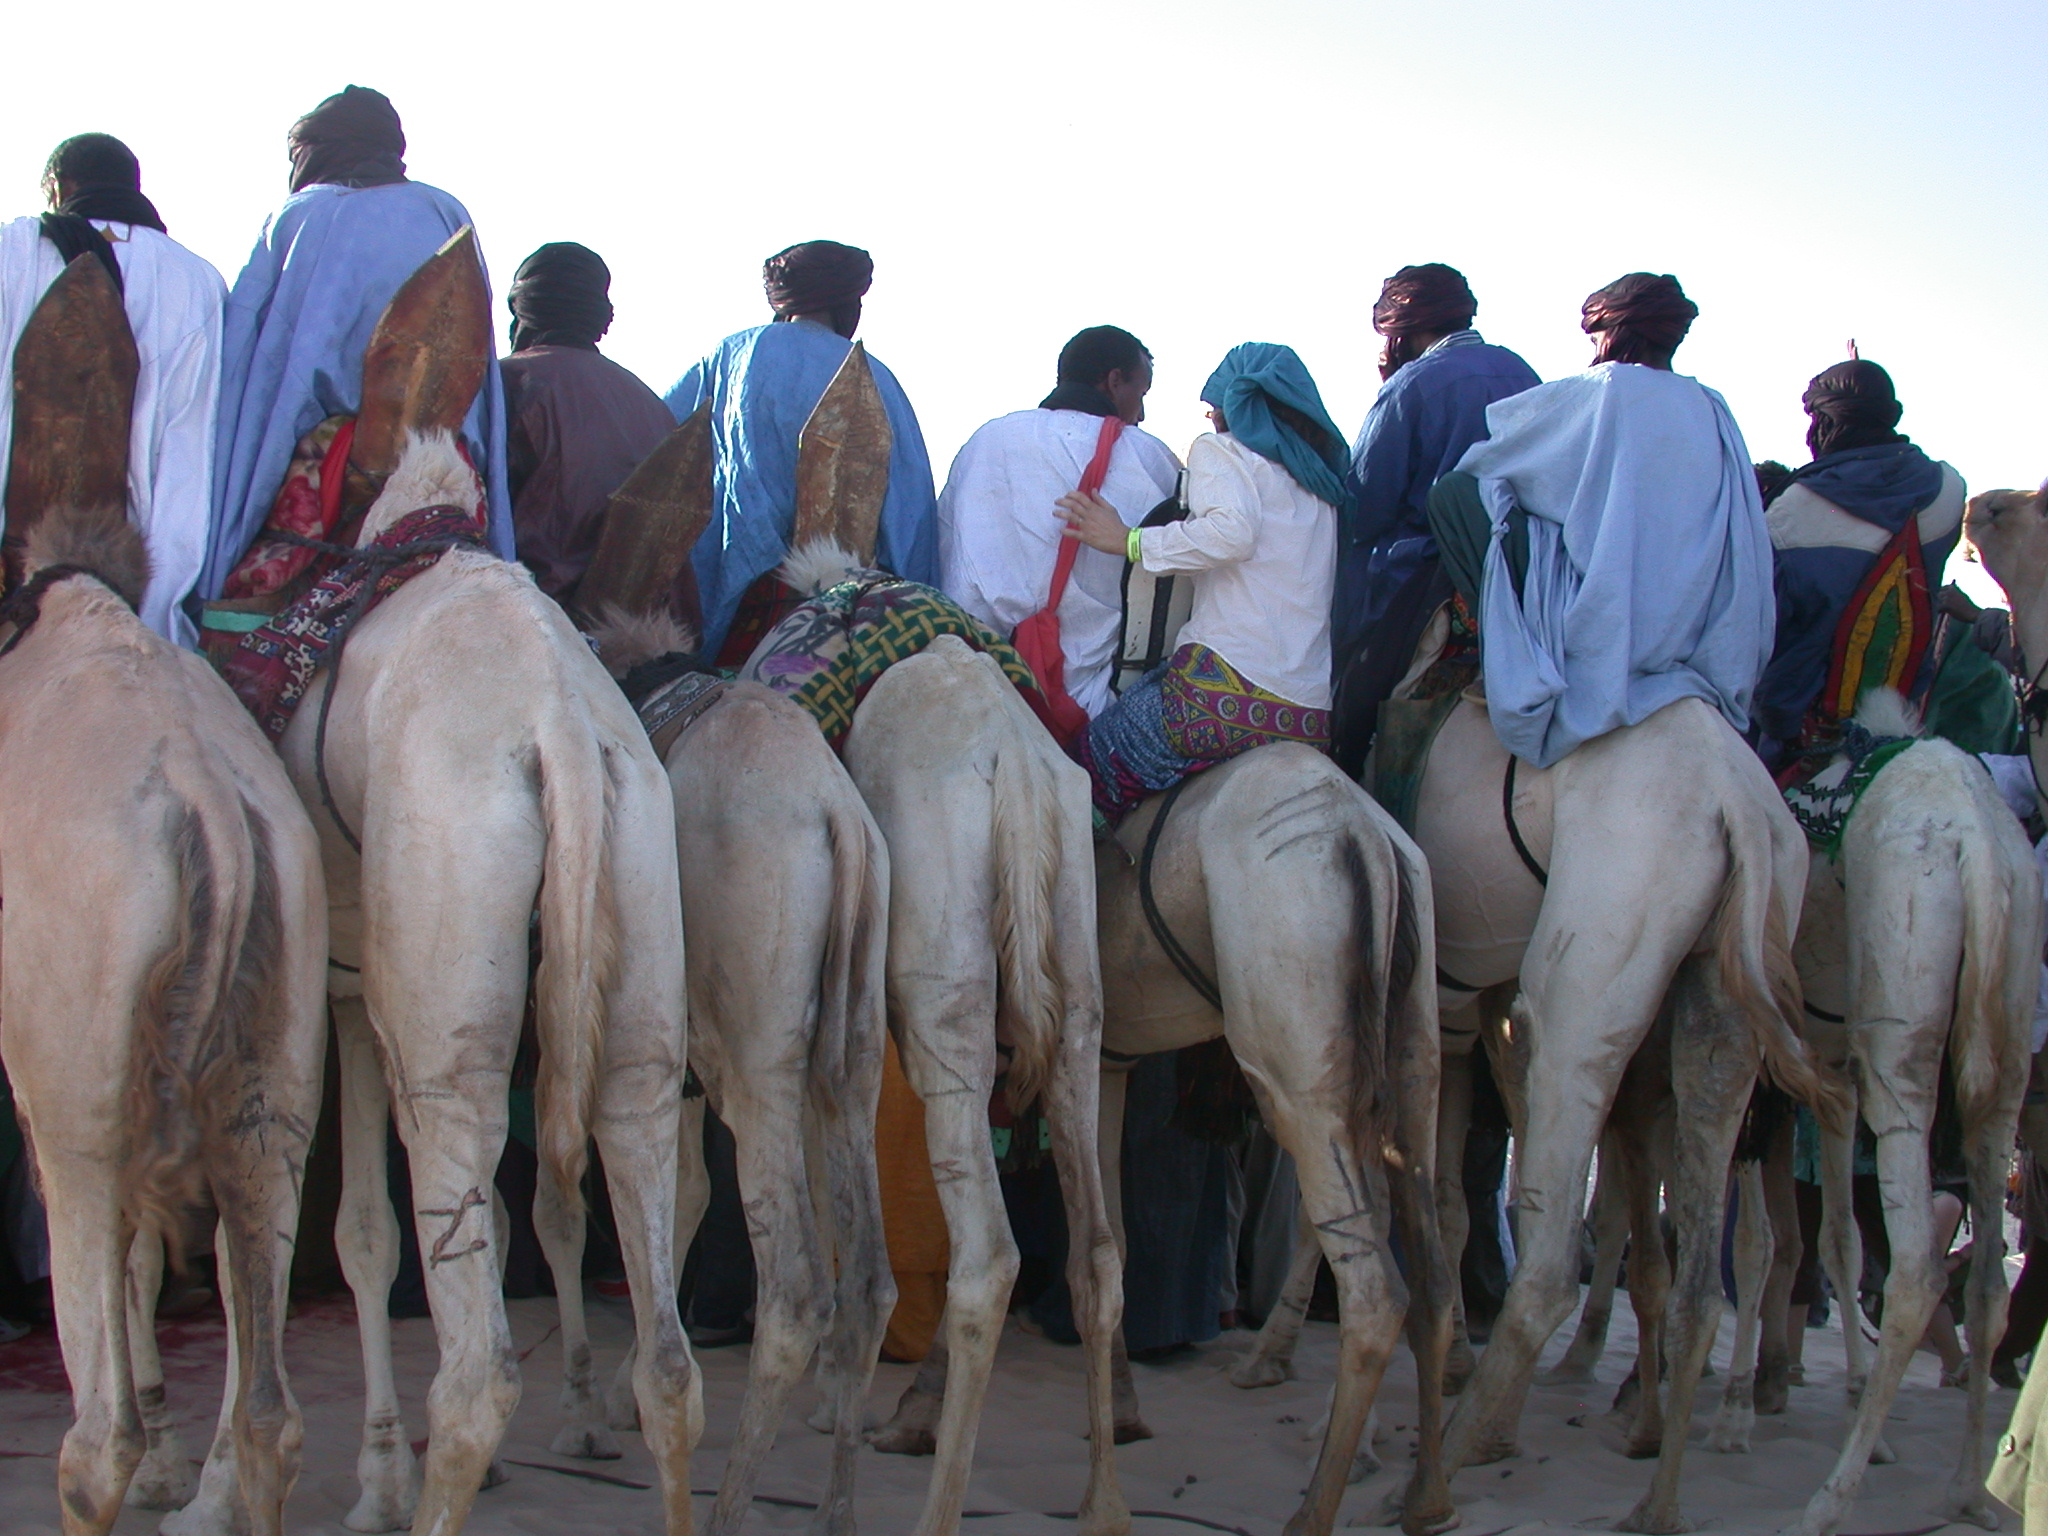 Hot Camel Butt, Preparing for Camel Race, Festival in the Desert, Essakane, Mali